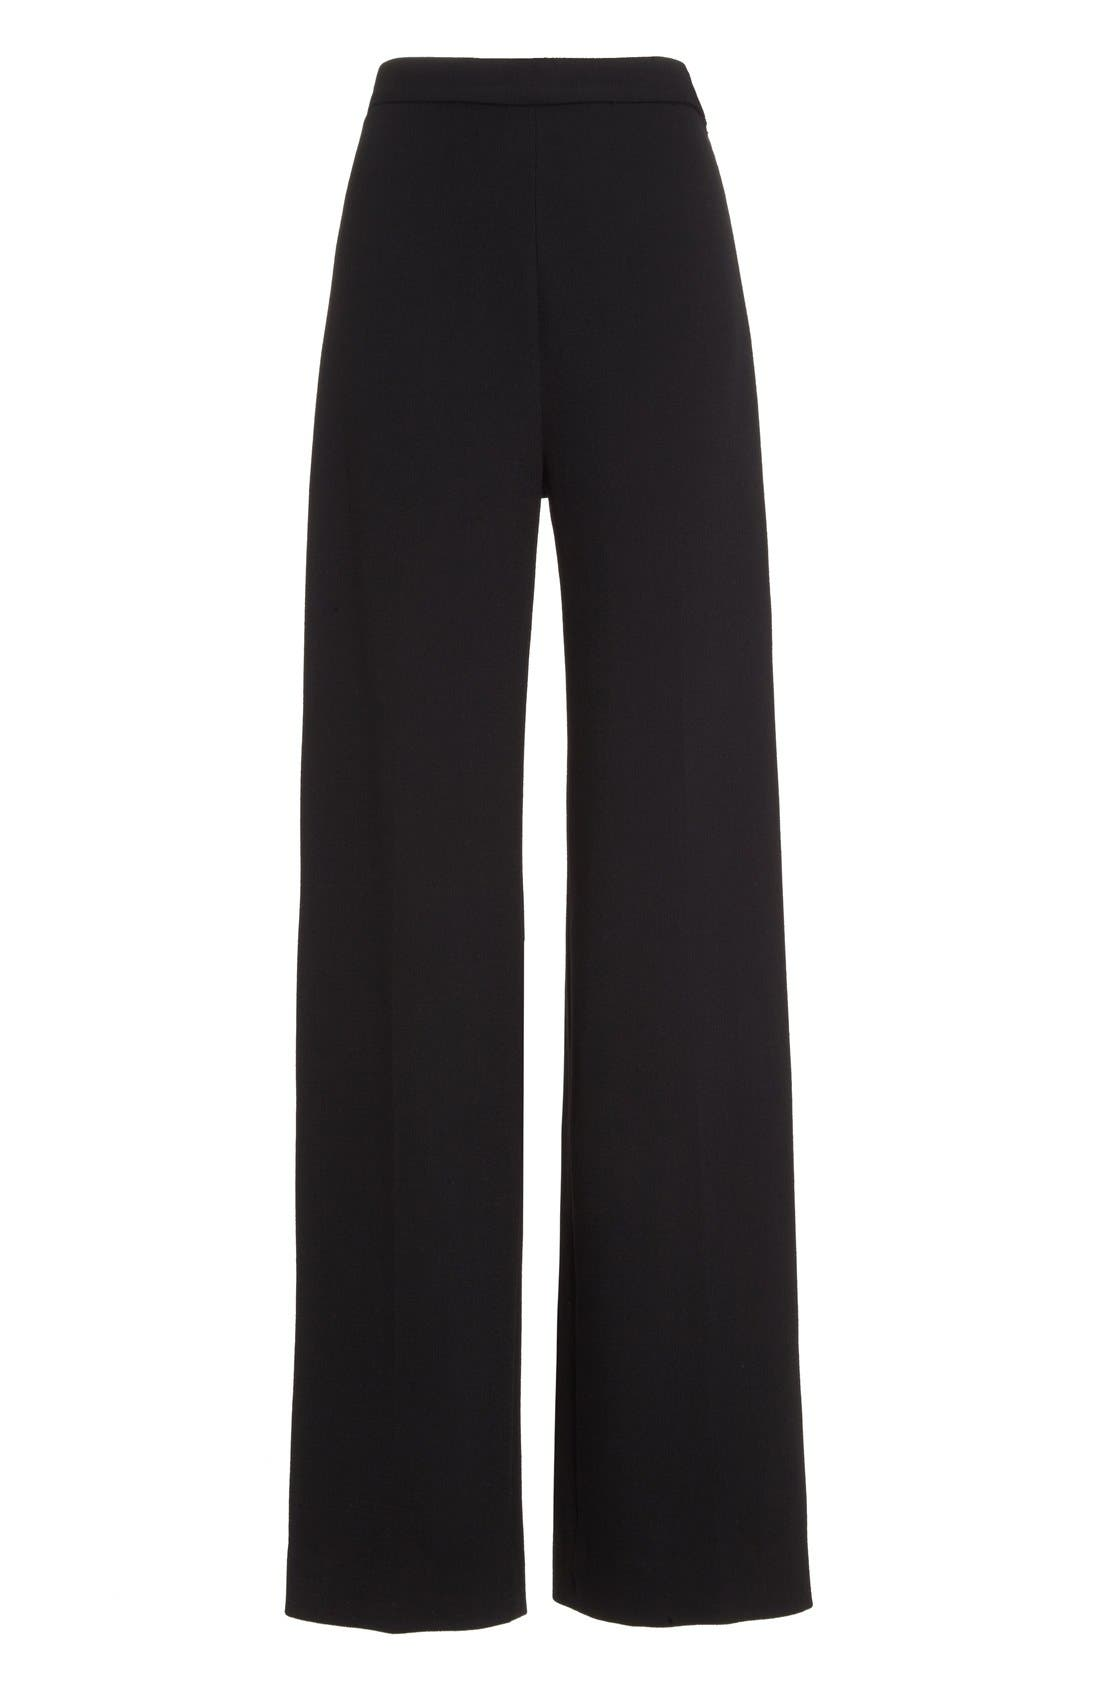 Stretch Wool High Waist Pants,                             Alternate thumbnail 6, color,                             001